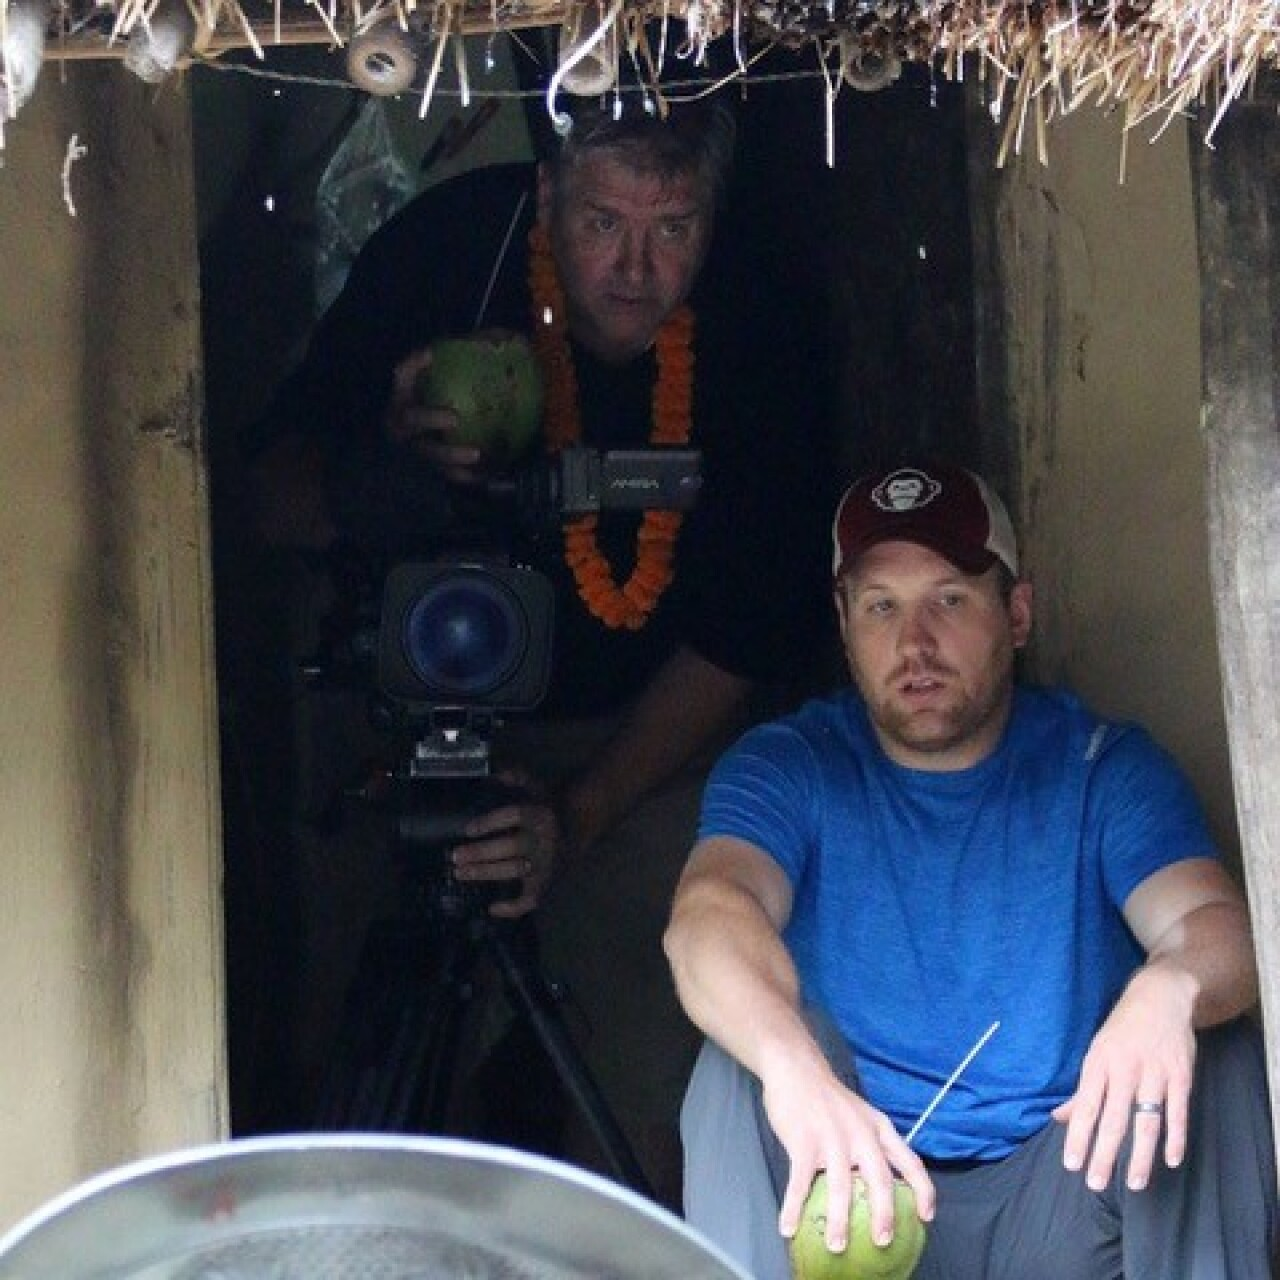 The videographer (holding his camera) is standing behind a seated man in a blue shirt holing a coconut. Both are in a small hut enclosure.